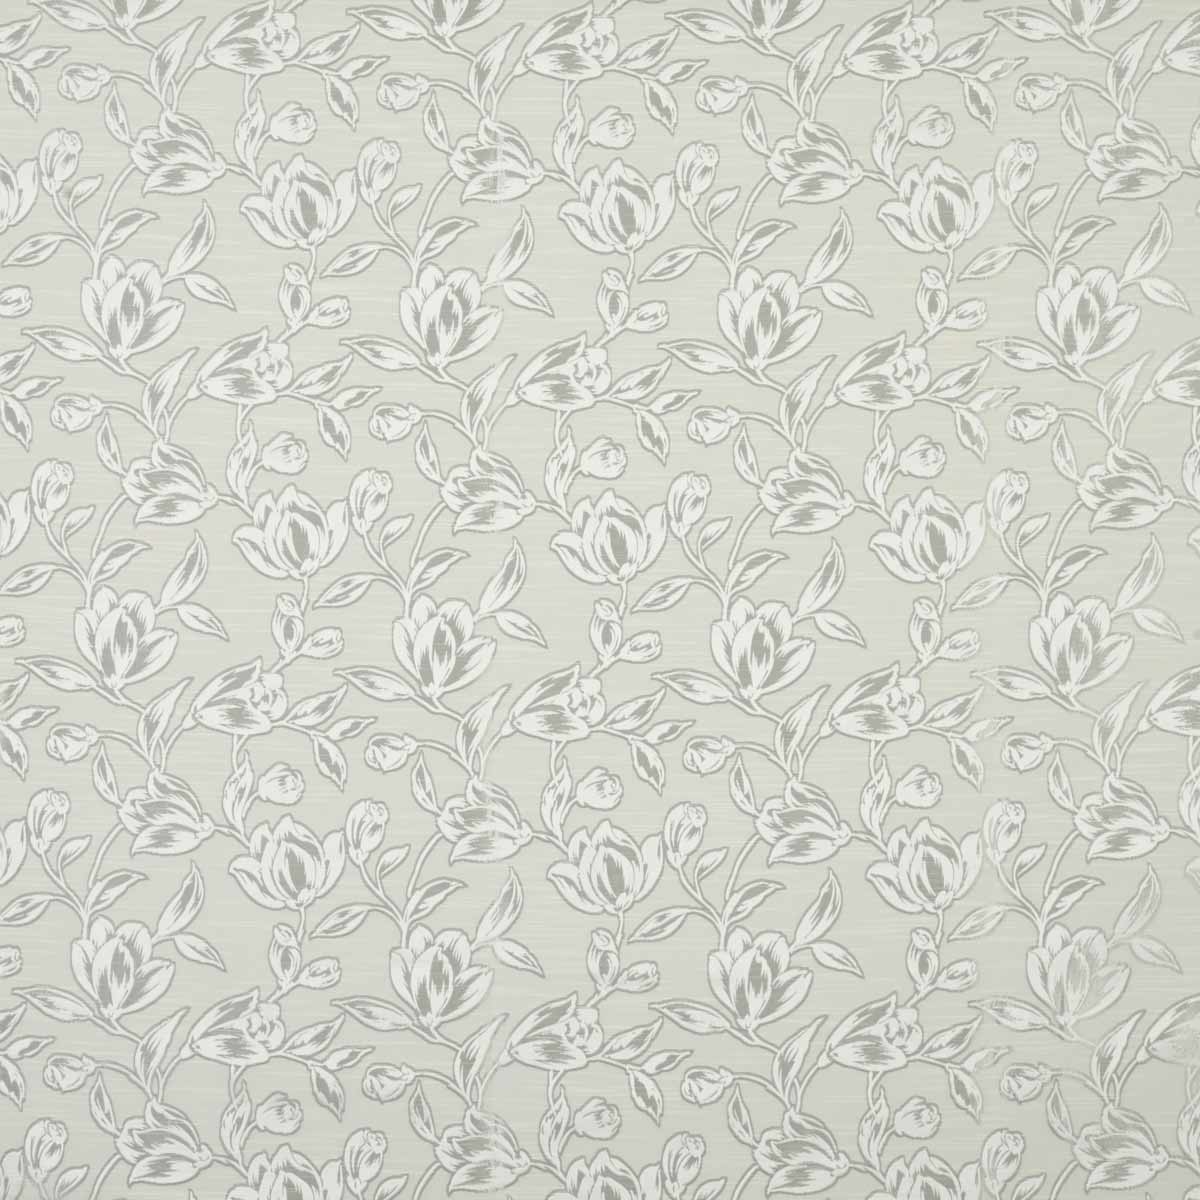 Stockists of Silver Hepburn Curtain Fabric